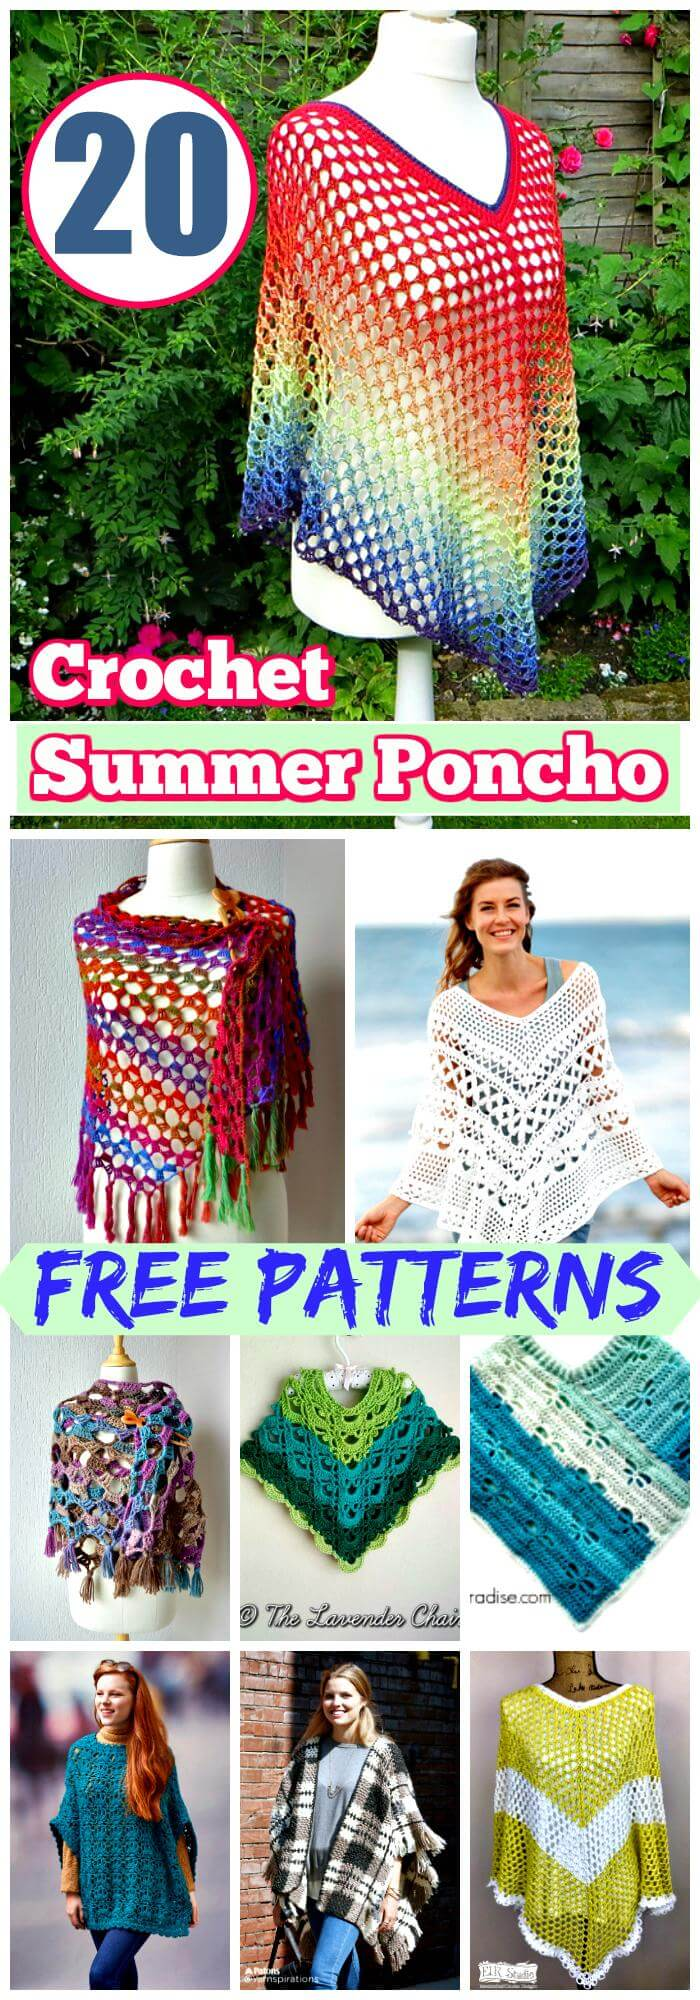 20 Free 12 Granny Square Crochet Patterns: 20 Free Crochet Summer Poncho Patterns For Women's